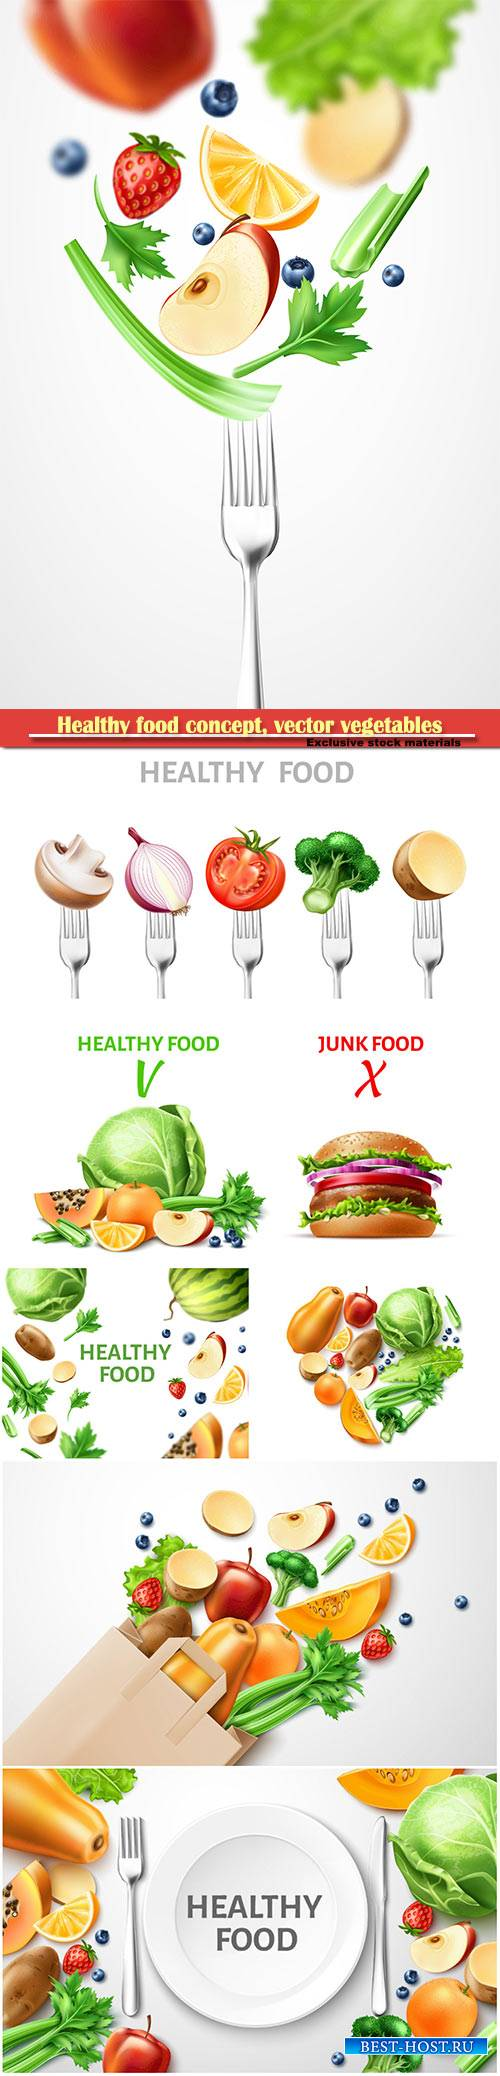 Healthy food concept, vector organic vegetables and fruits